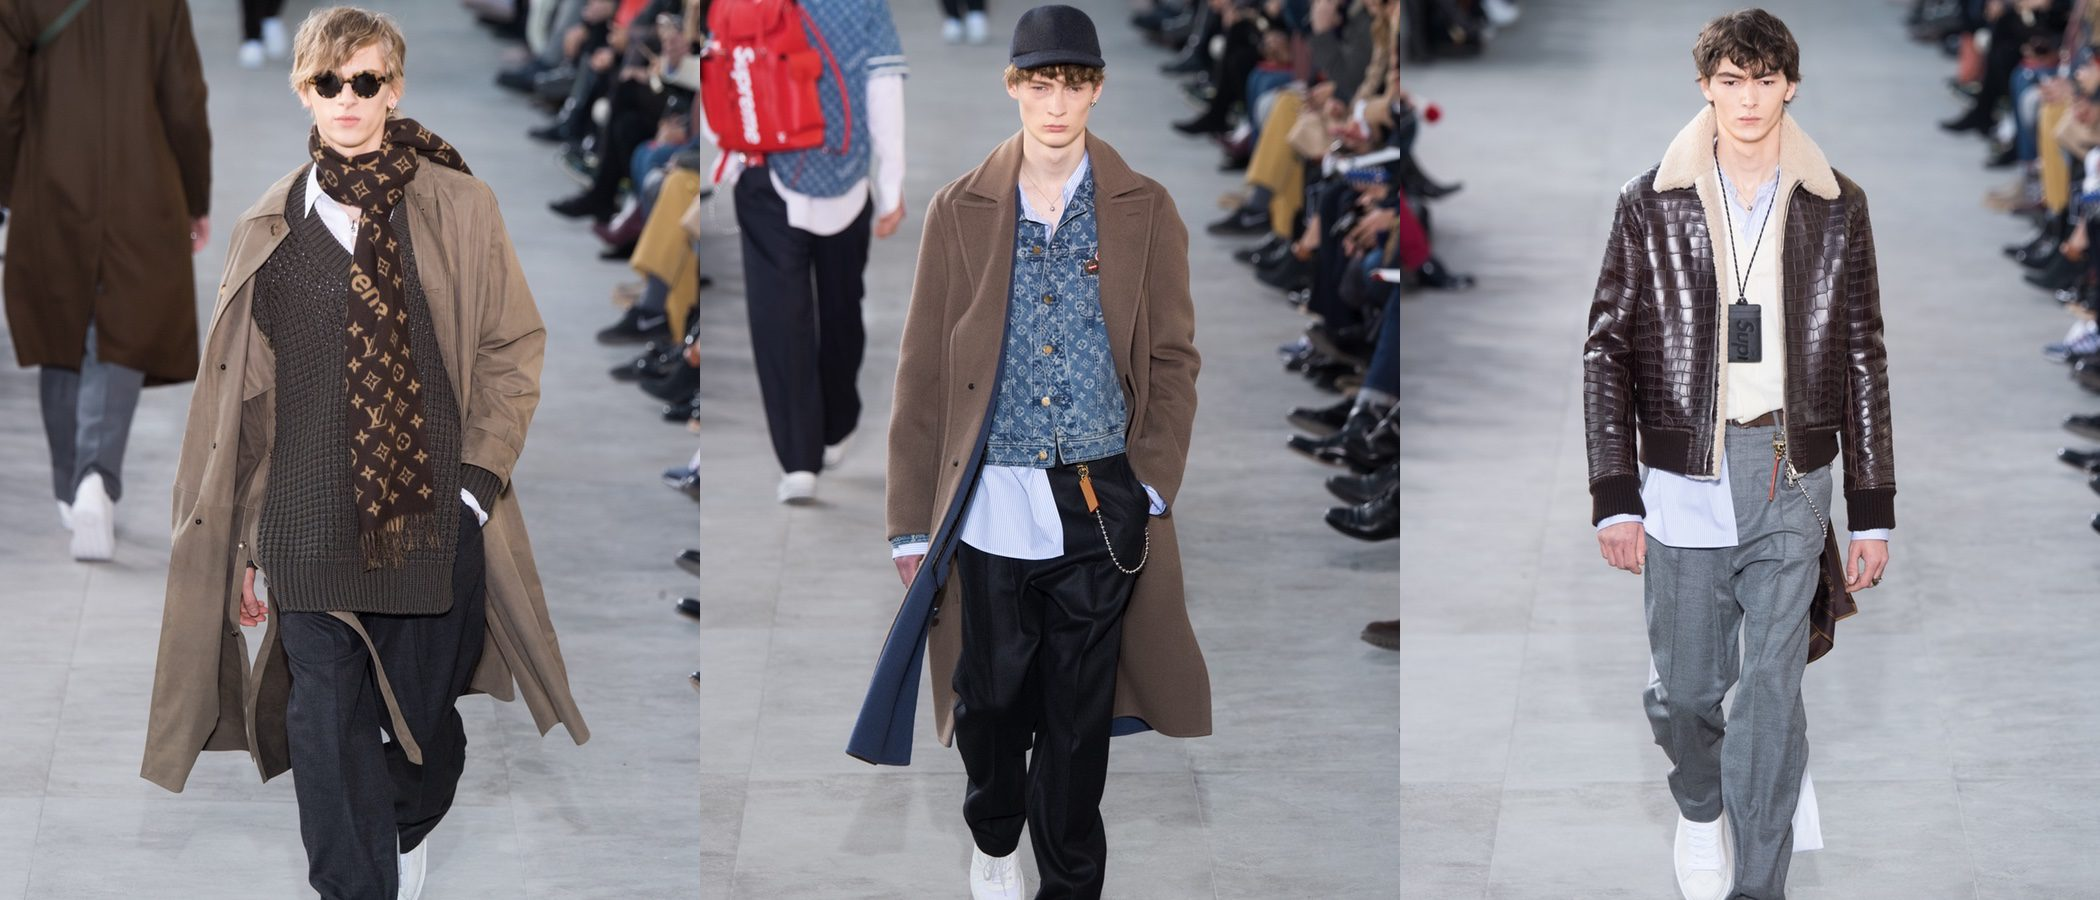 Louis Vuitton transforma su otoño/invierno 2017/2018 en skate con Supreme en la París Fashion Week